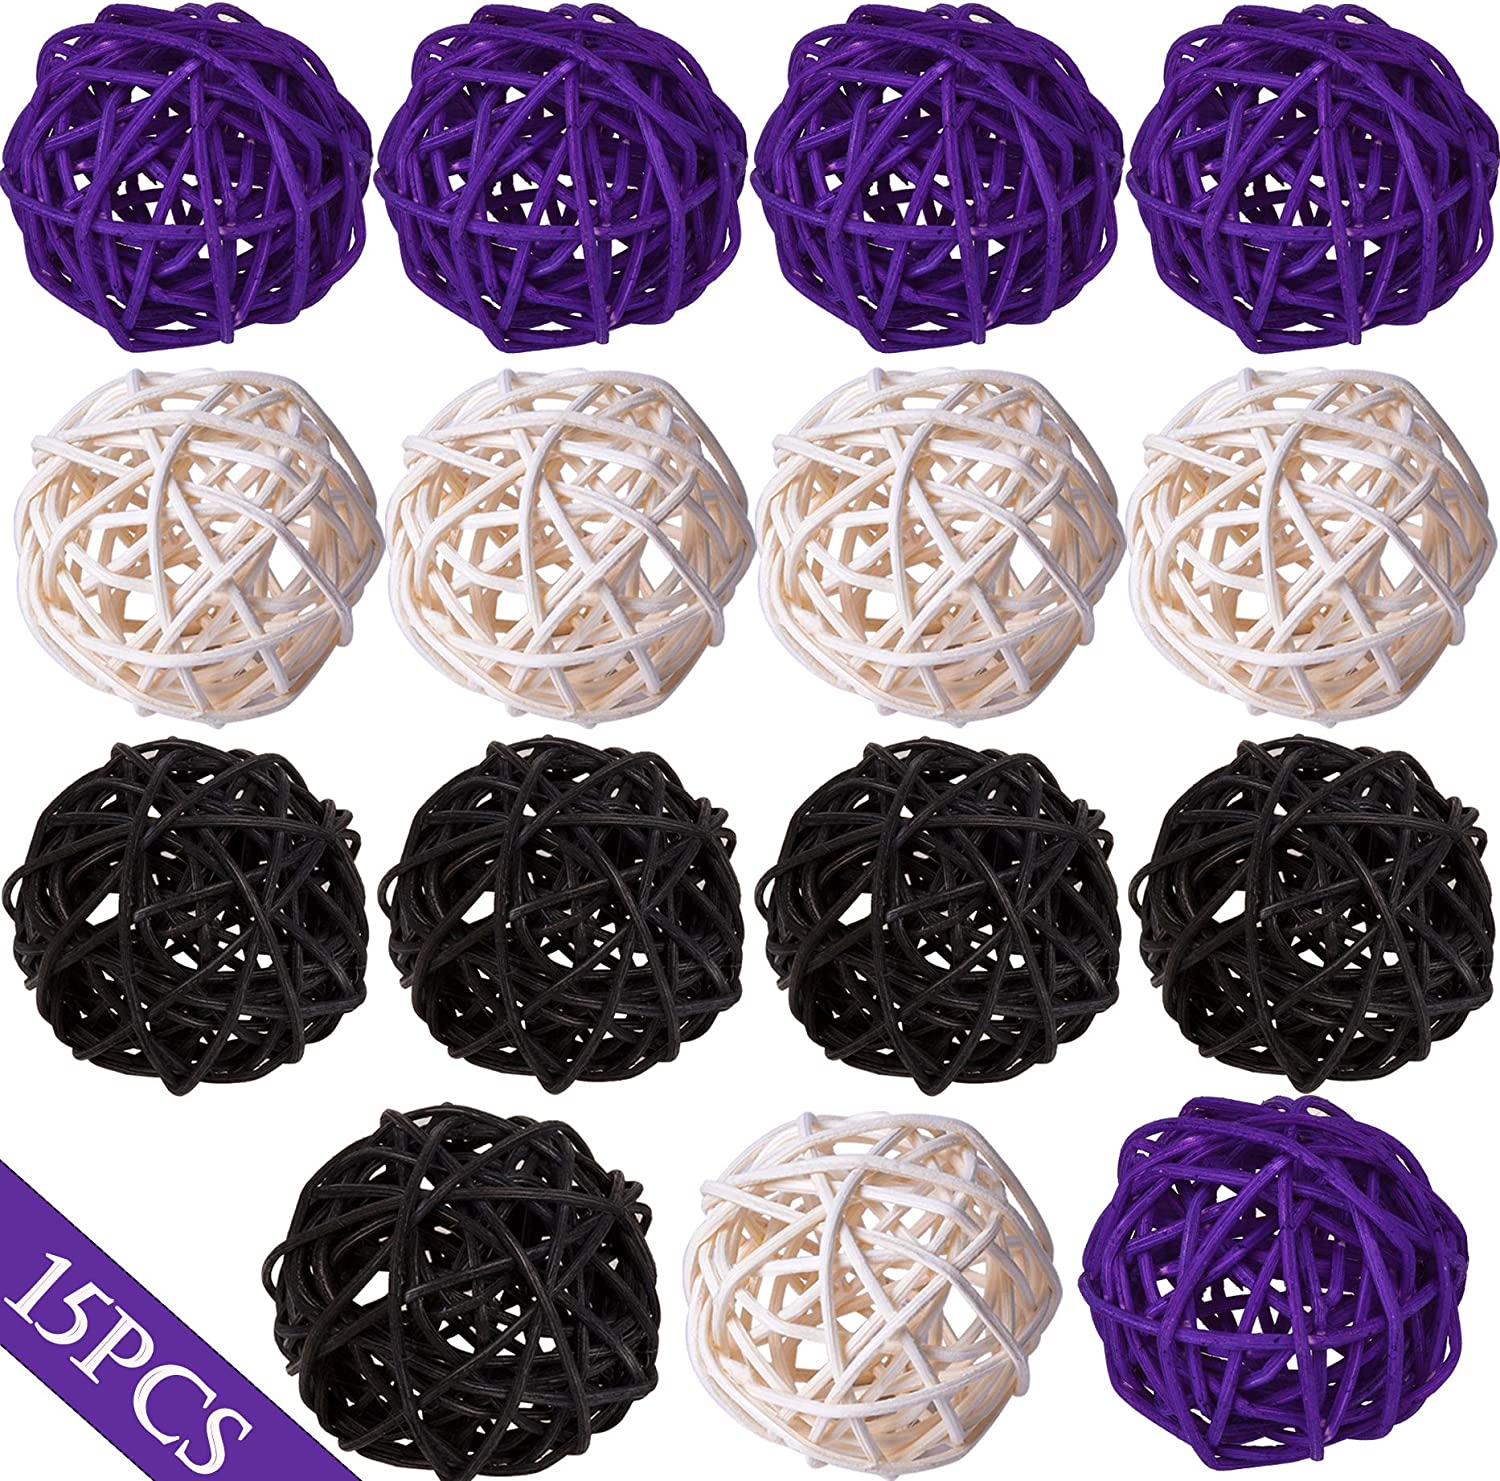 20Pcs Decorative Rattan Ornament Balls Christmas Birthday Party Wicker Balls